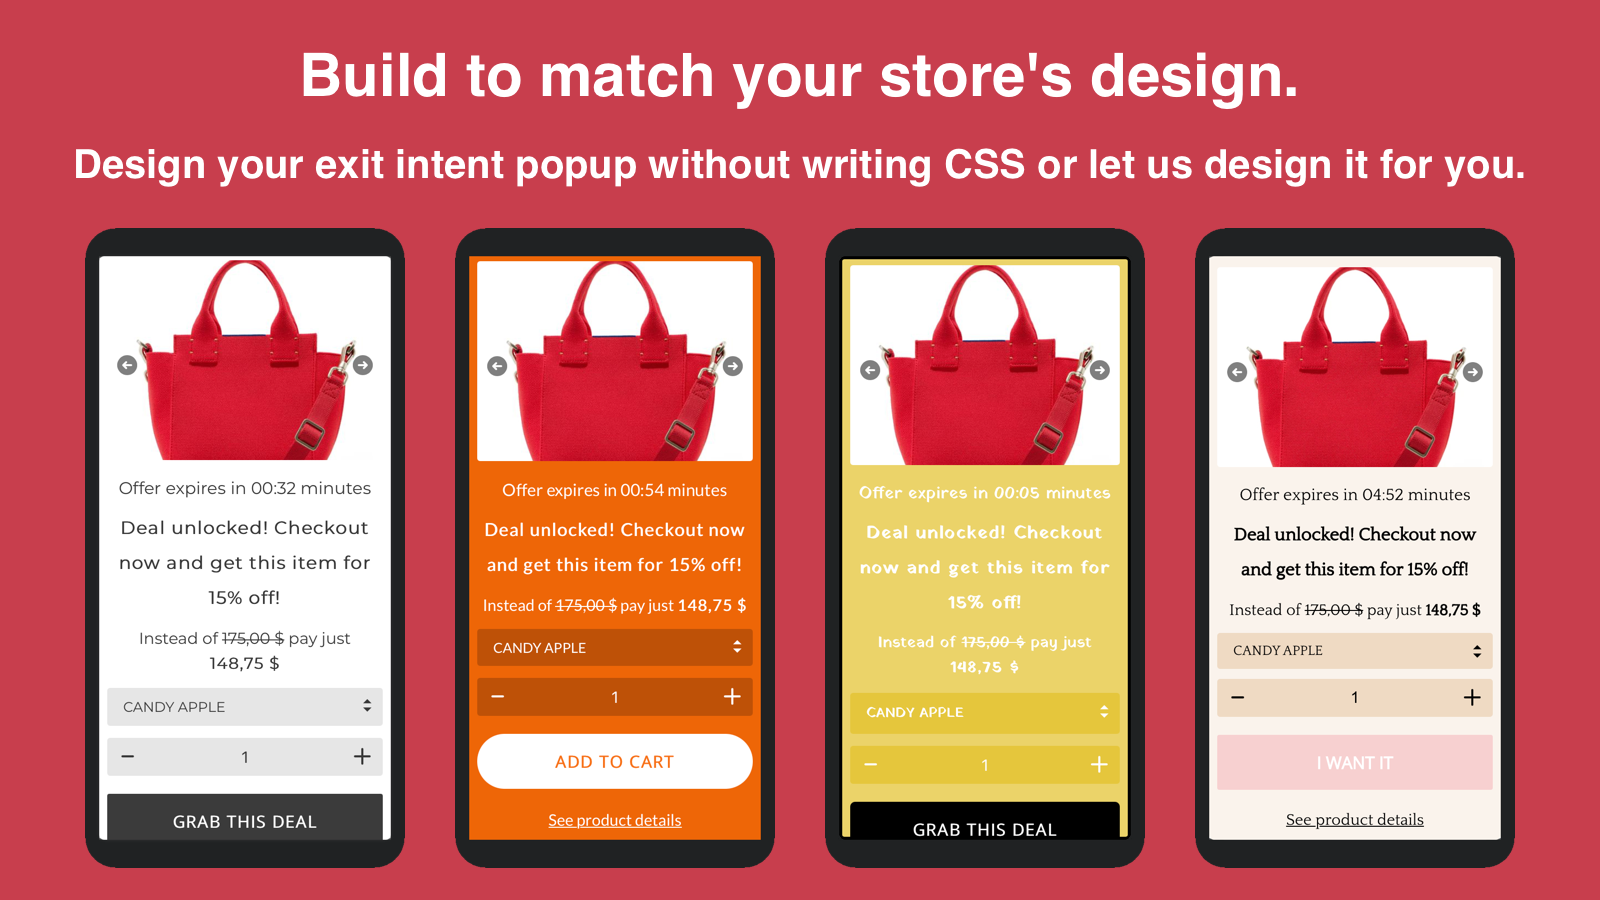 Build to match your store's design